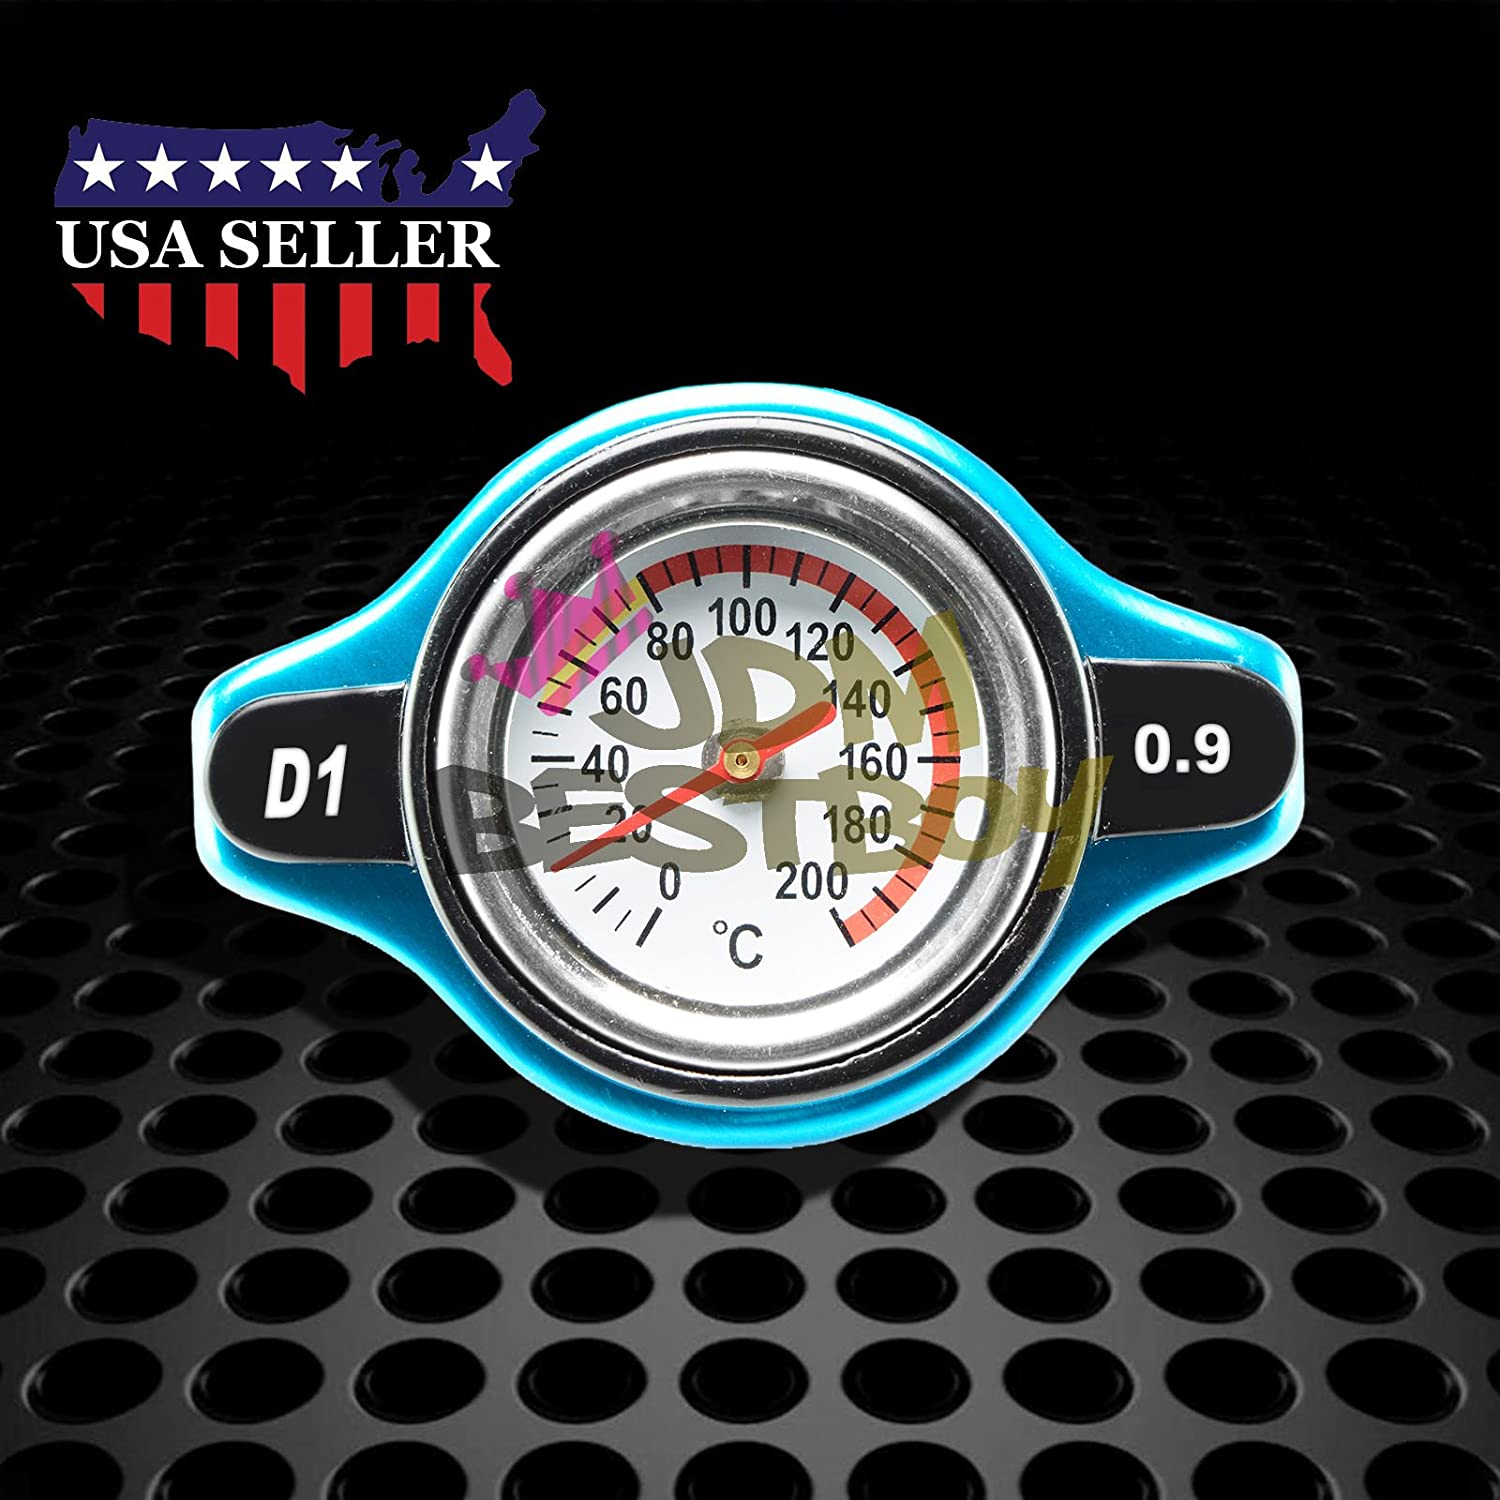 0.9 Bar Thermostatic Radiator Cap 13 PSI Pressure Rating with Temperature Gauge Aftermarket JDMBESTBOY